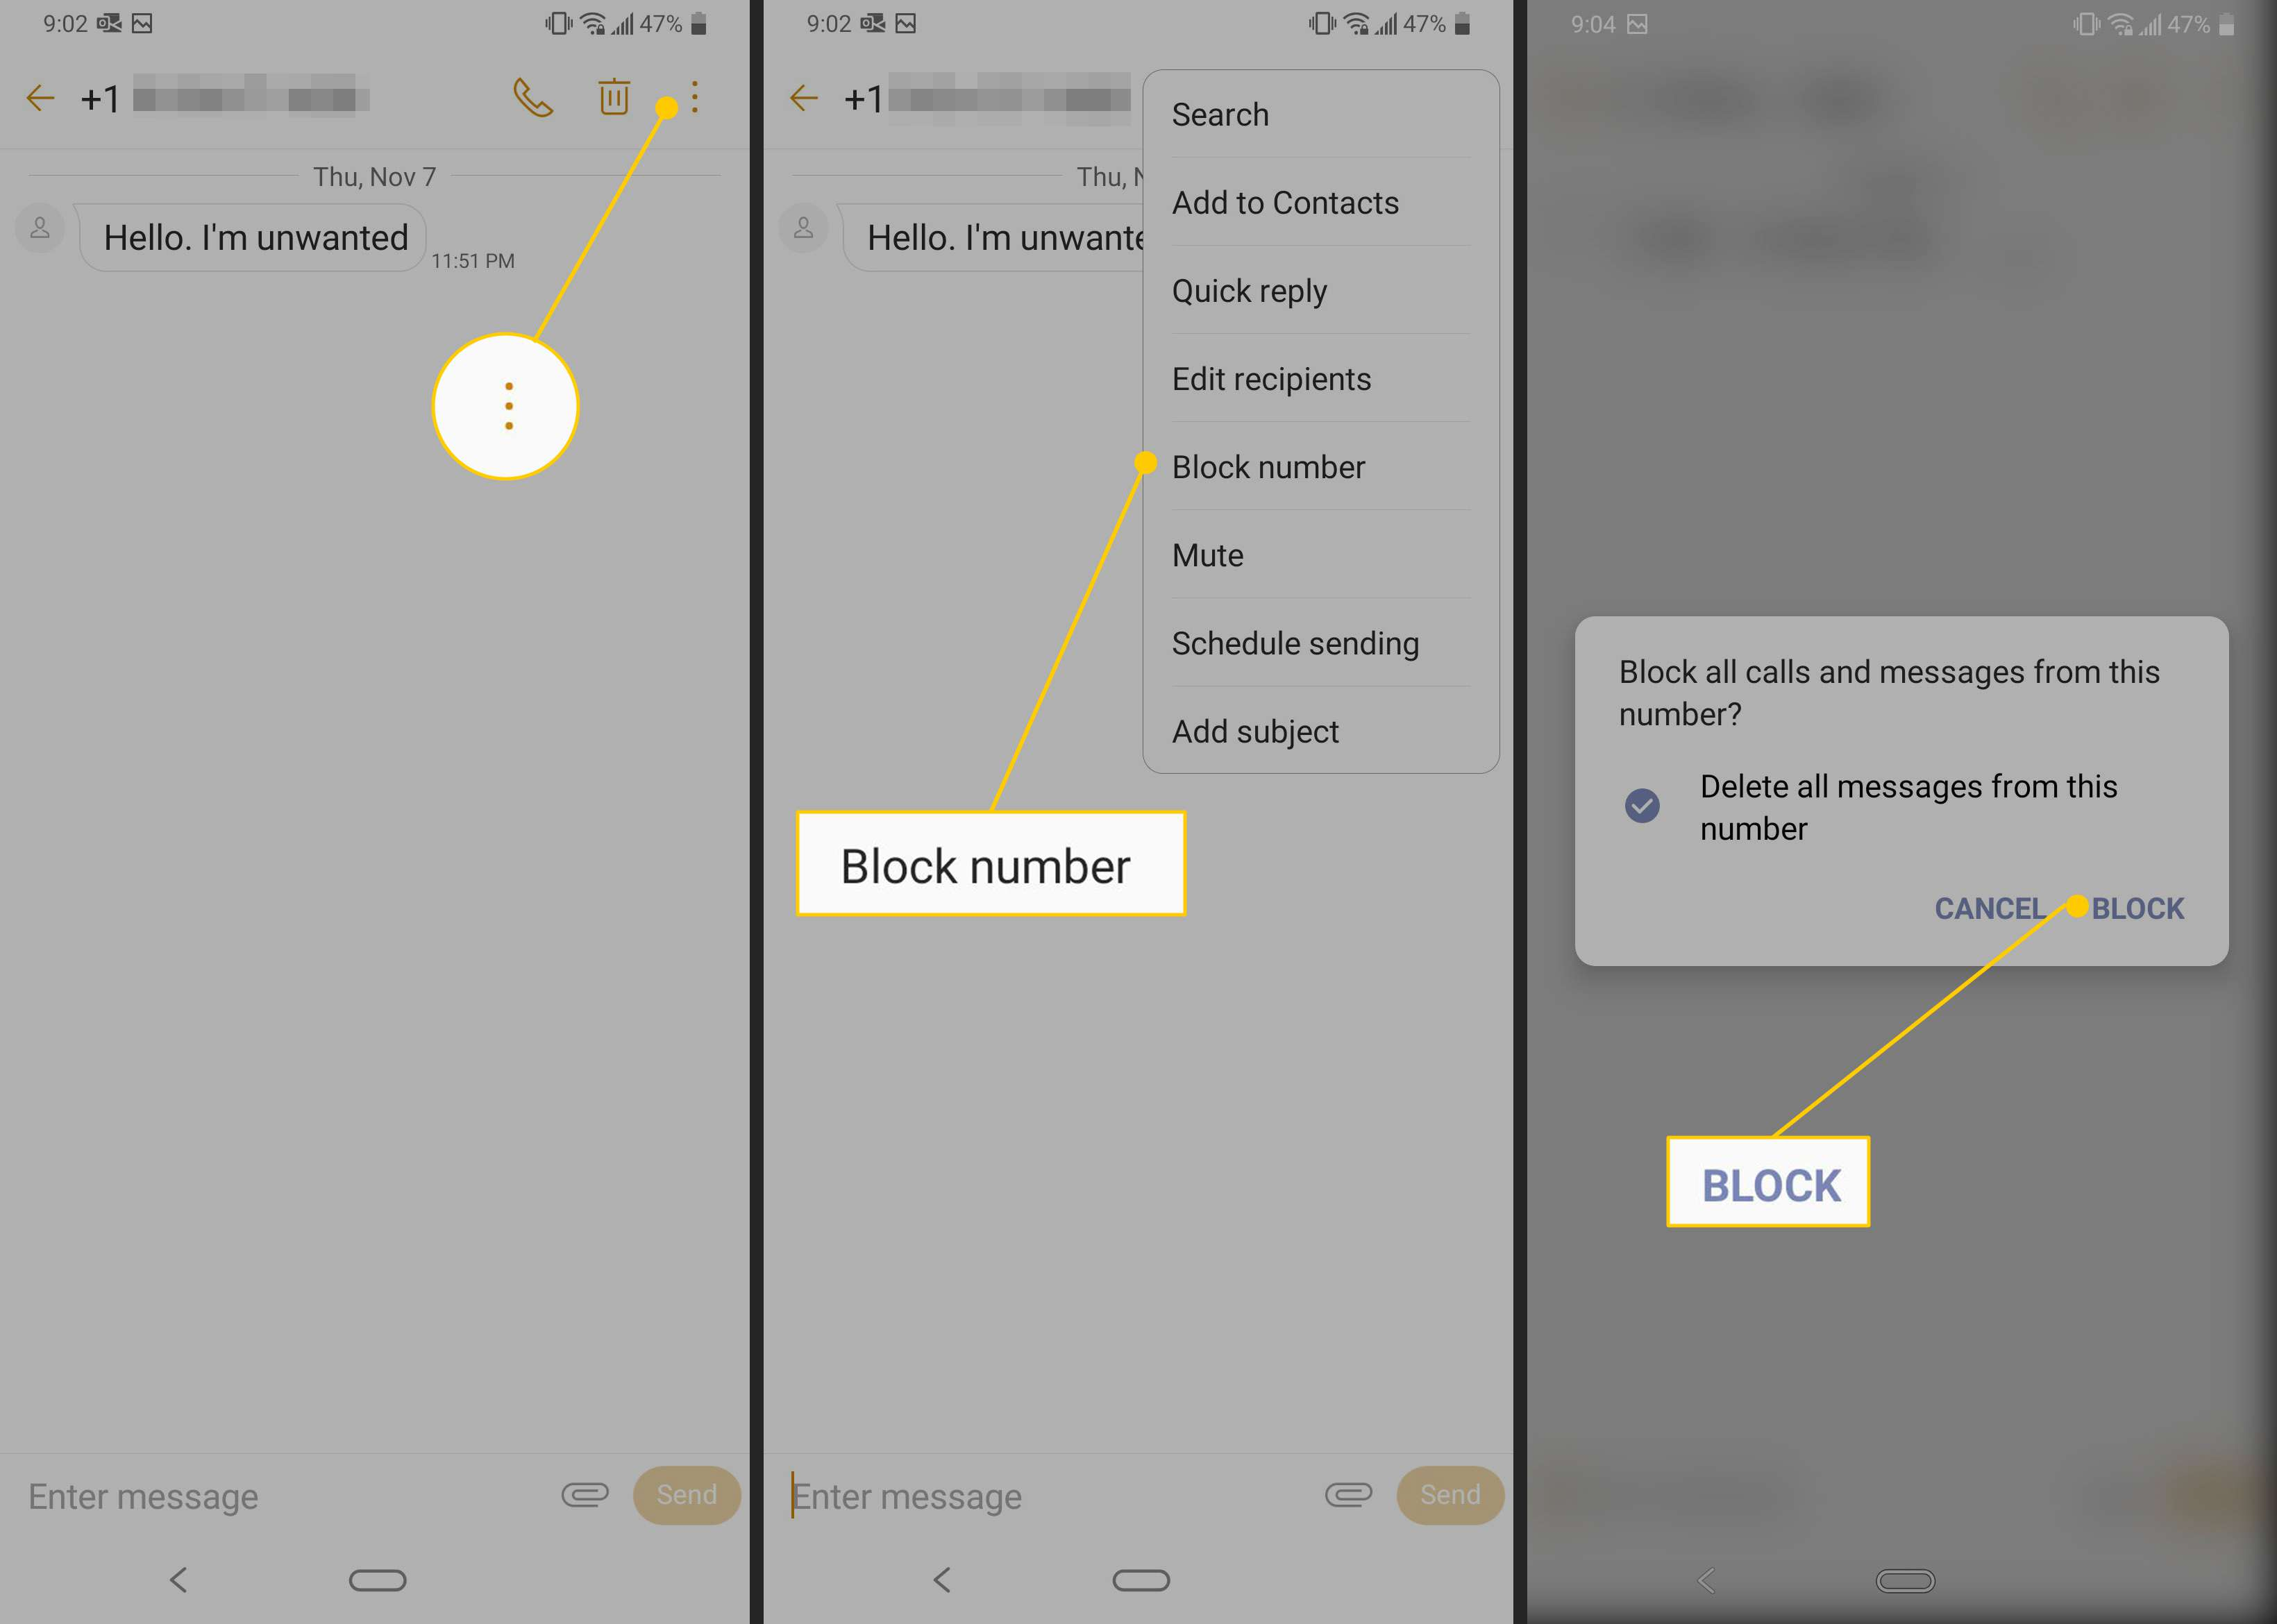 Menu button, Block number and Block confirmation button on LG phone